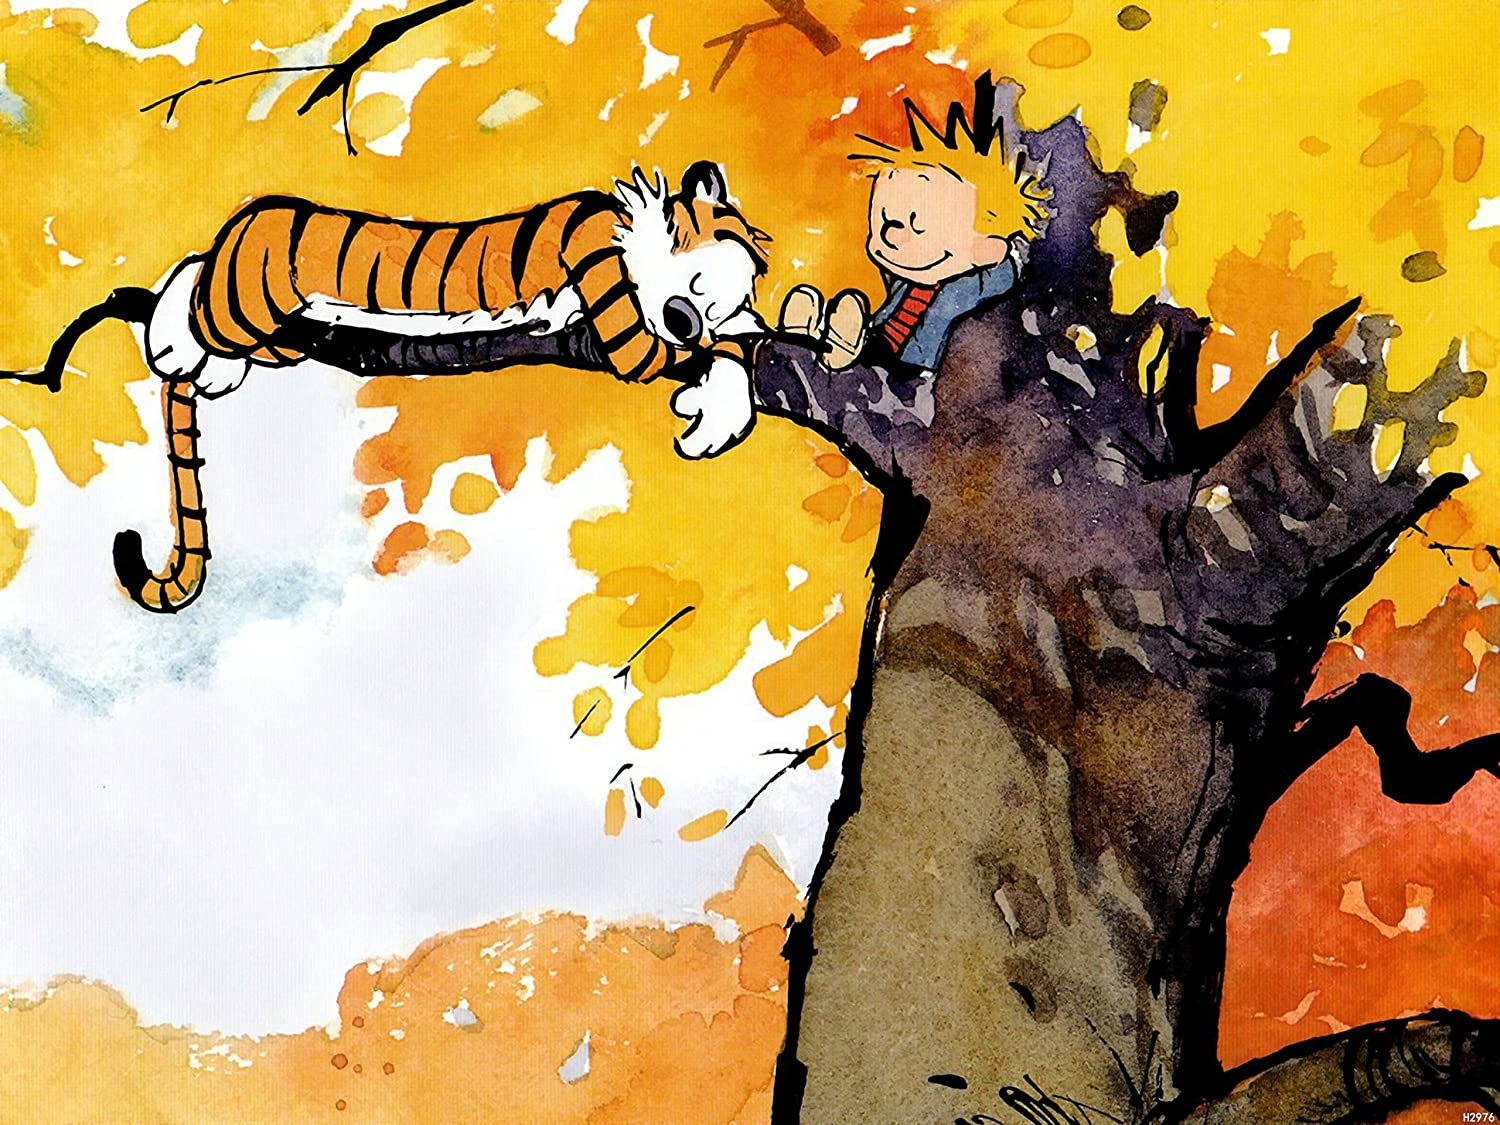 Amazon.com: XH2976 Calvin And Hobbes On The Tree HUGE GIANT WALL ...